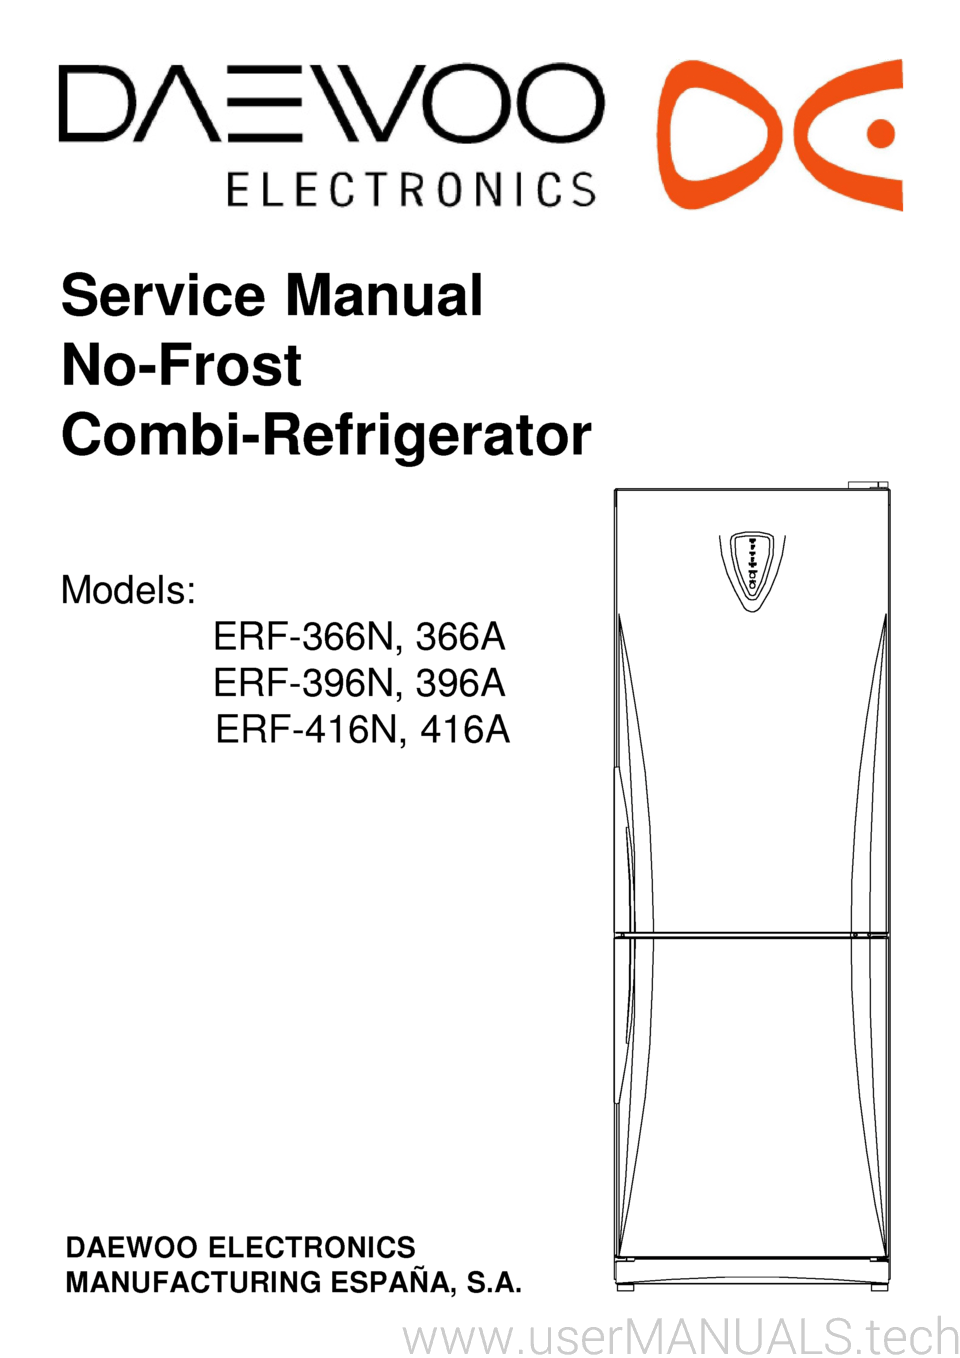 hight resolution of page 1 service manual no frost combi refrigerator models erf 366n